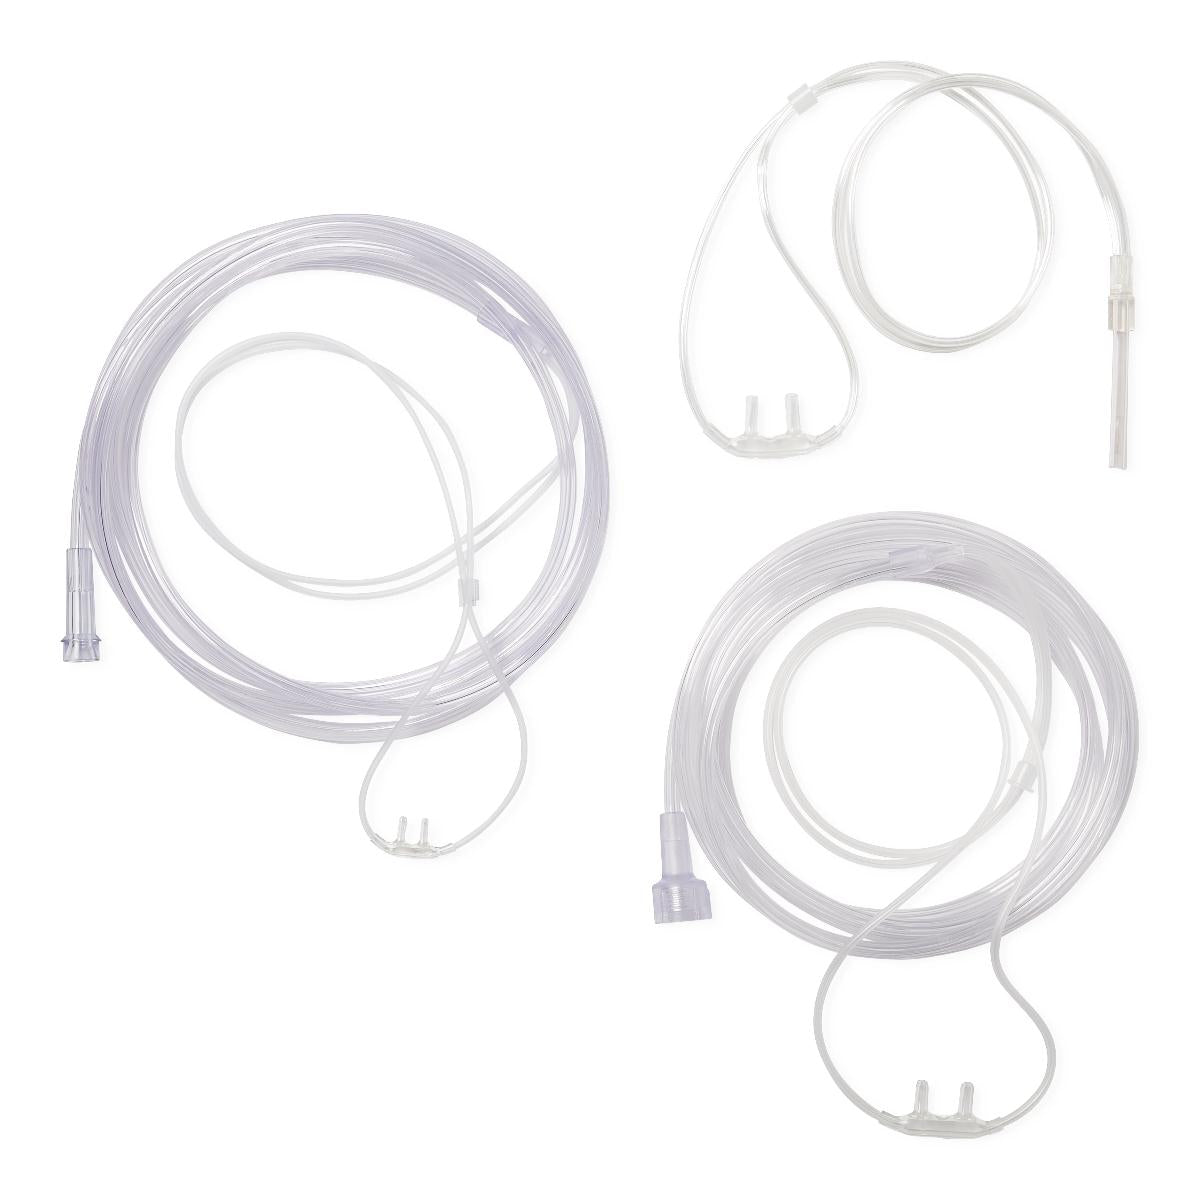 Soft-Touch Oxygen Cannulas with Standard Connector